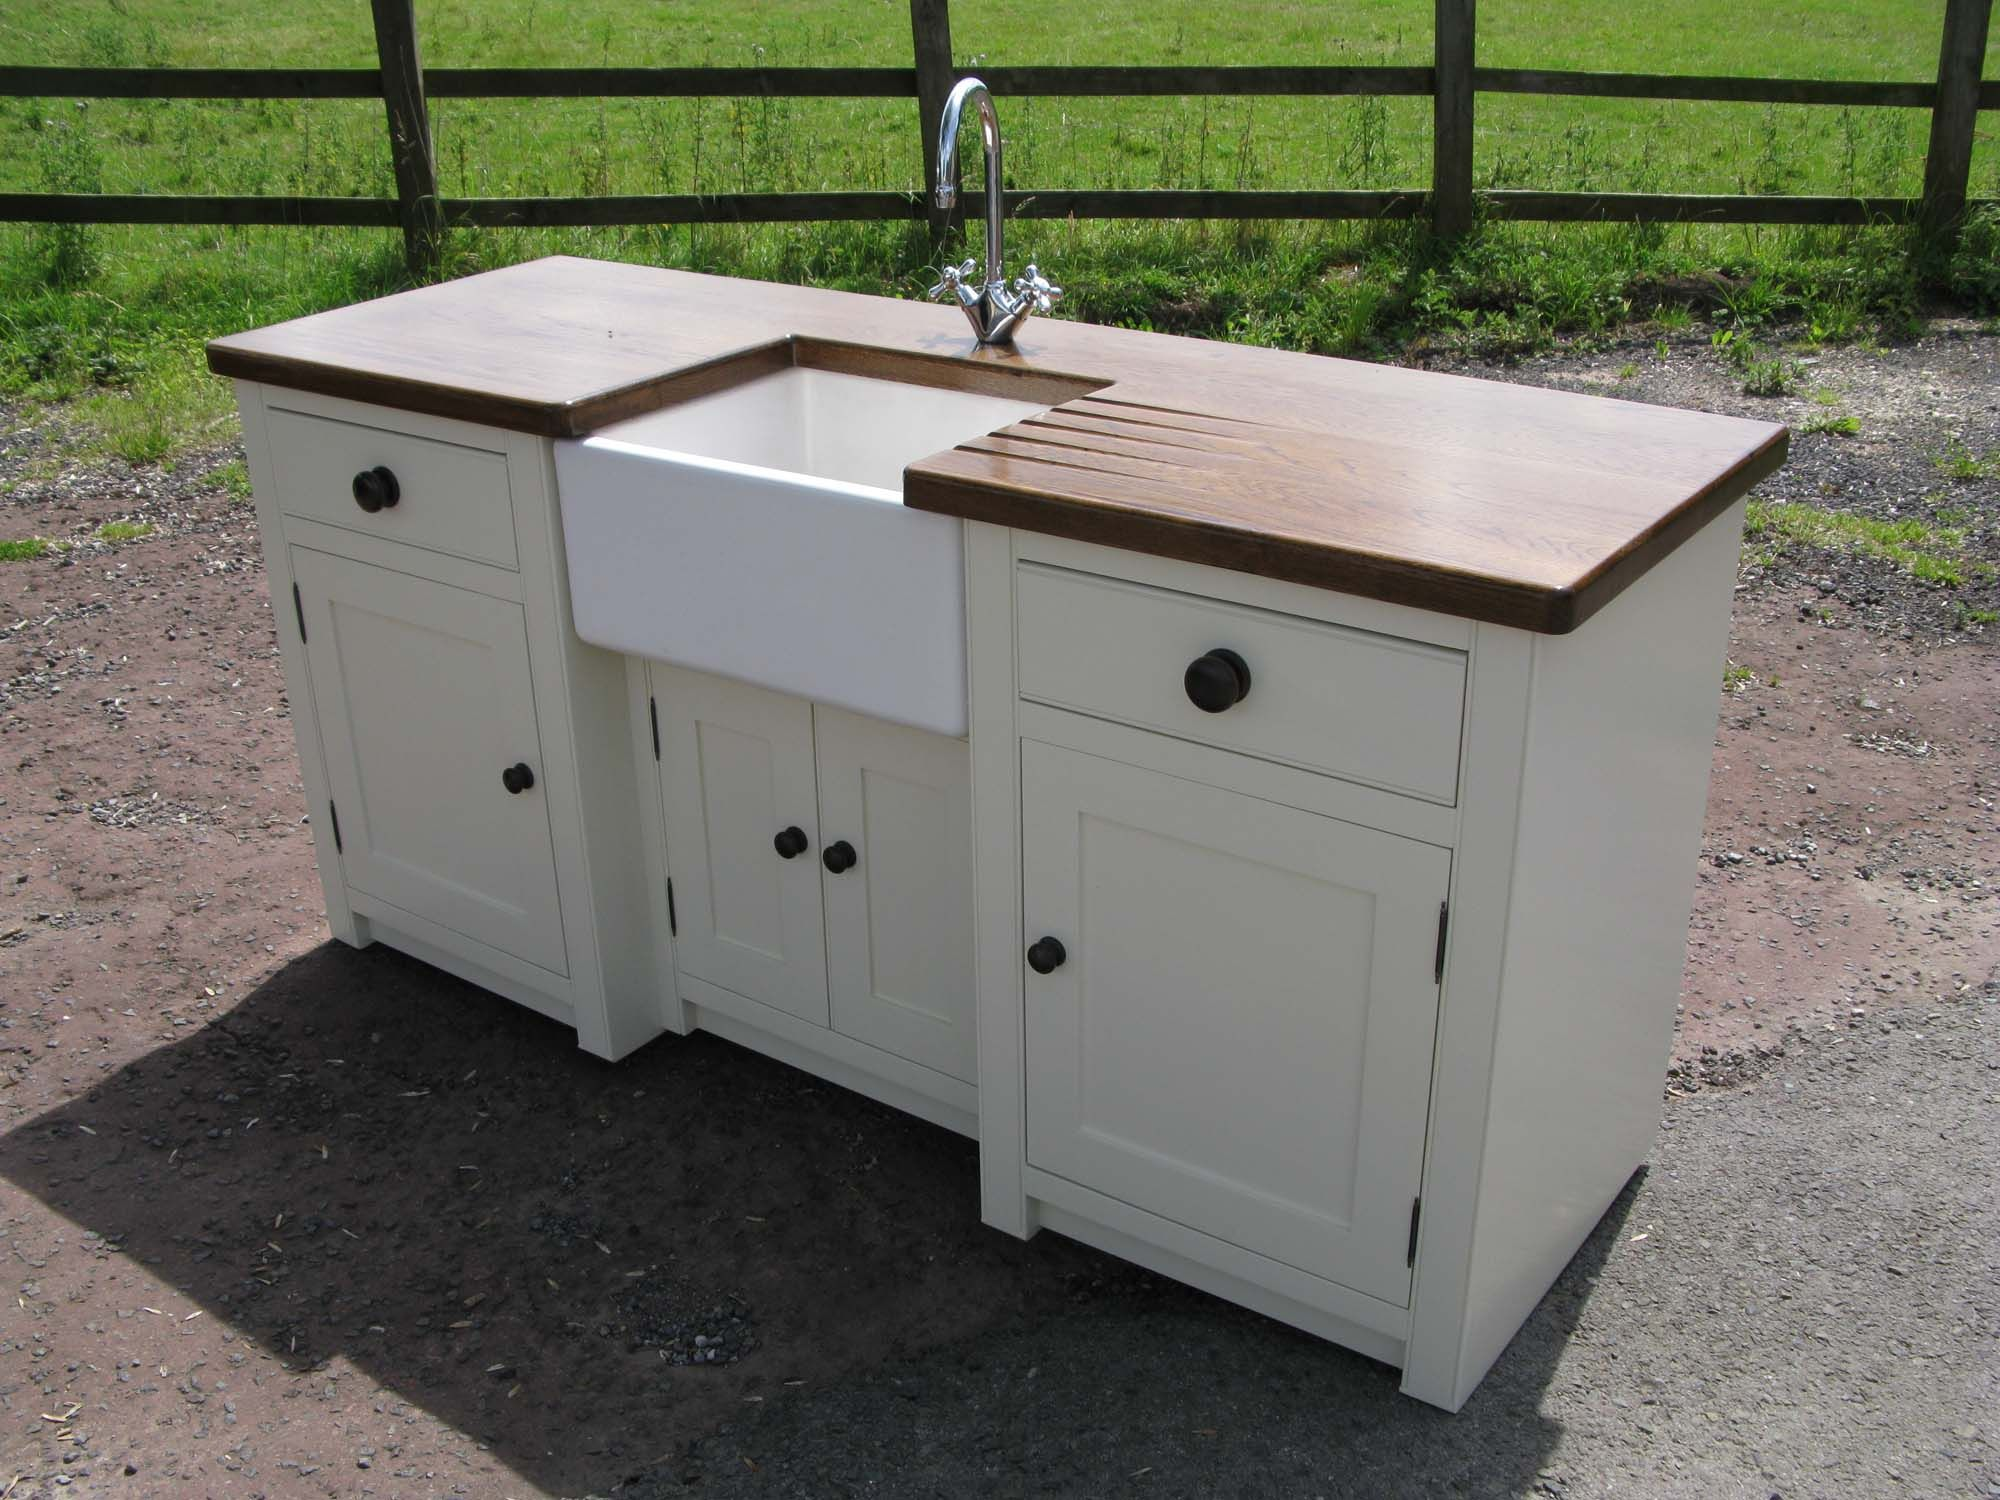 Free Standing Kitchen Units Google Search Free Standing Kitchen Sink Freestanding Kitchen Kitchen Sink Units